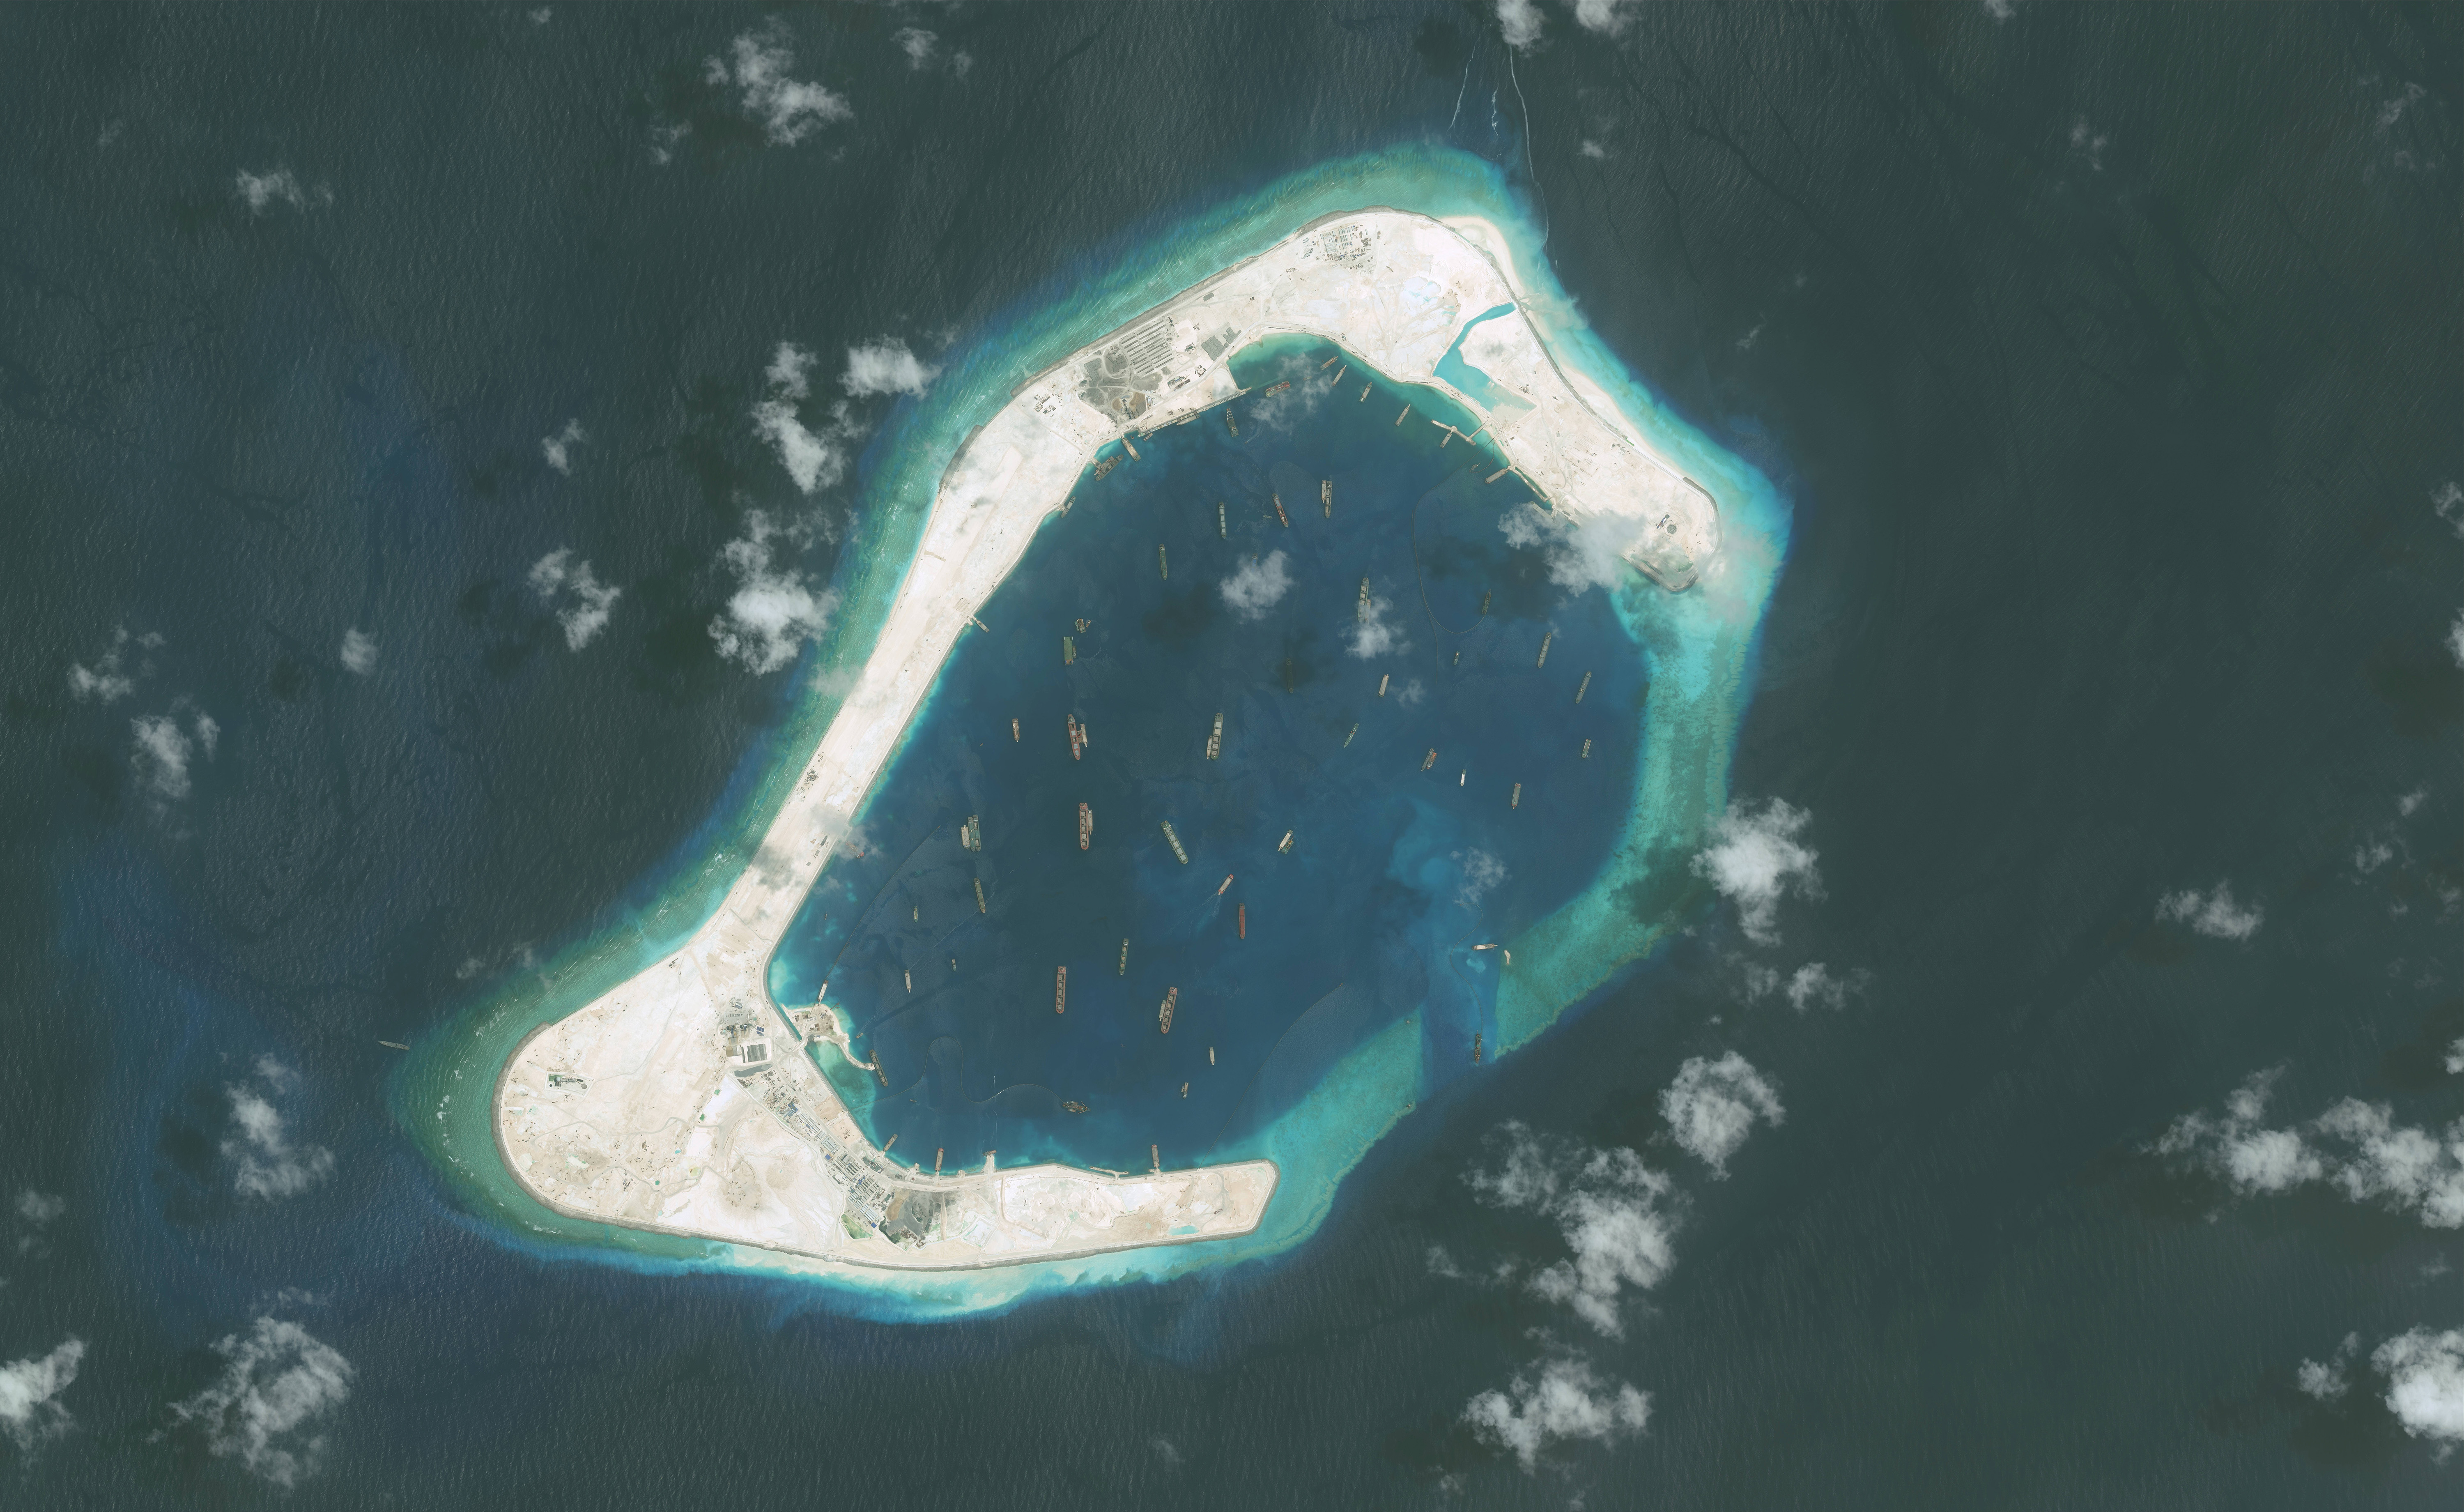 DigitalGlobe imagery of the Subi Reef in the South China Sea, a part of the Spratly Islands group, Sept. 1, 2015.